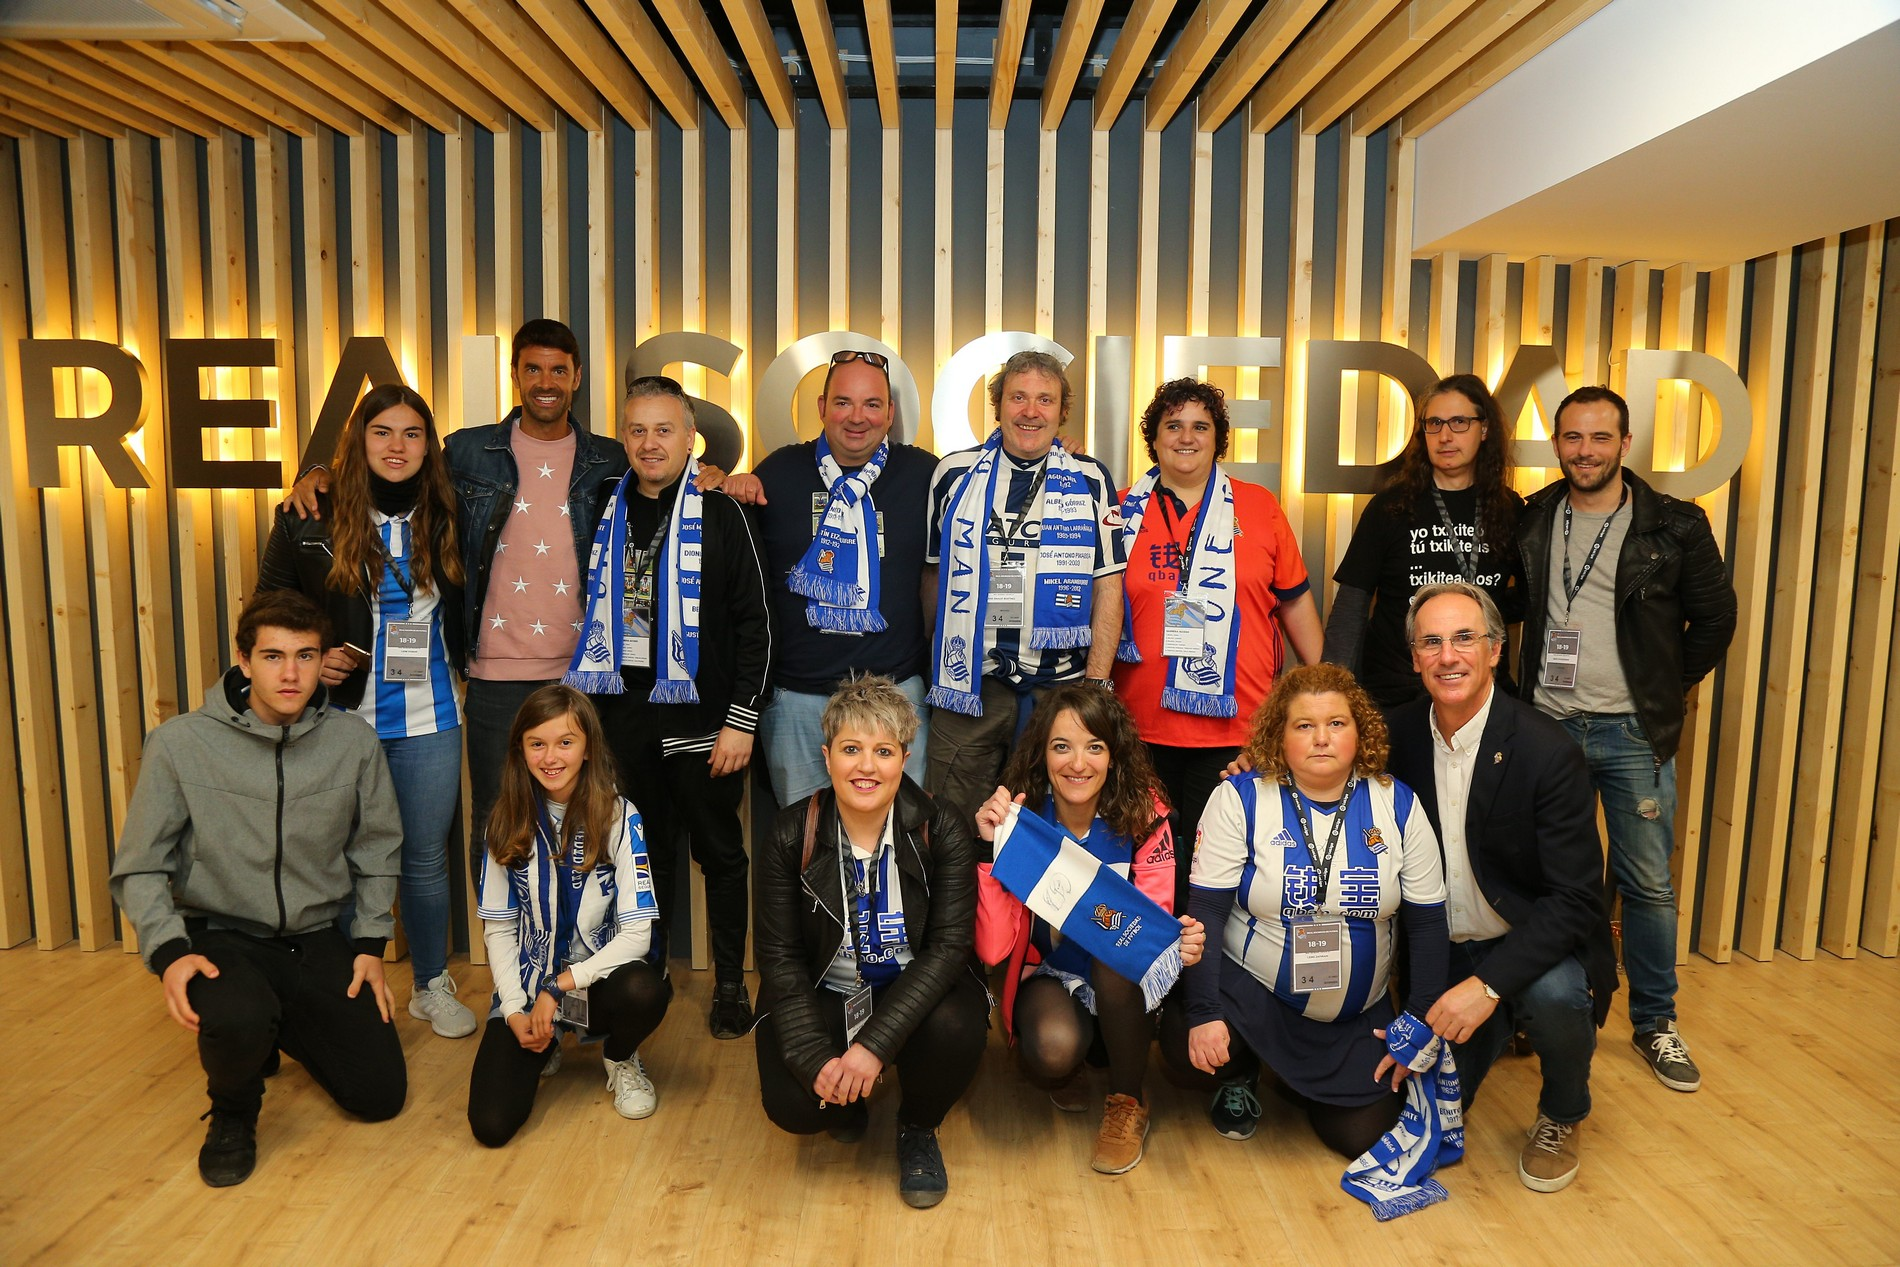 Real Sociedad smart scarf fans